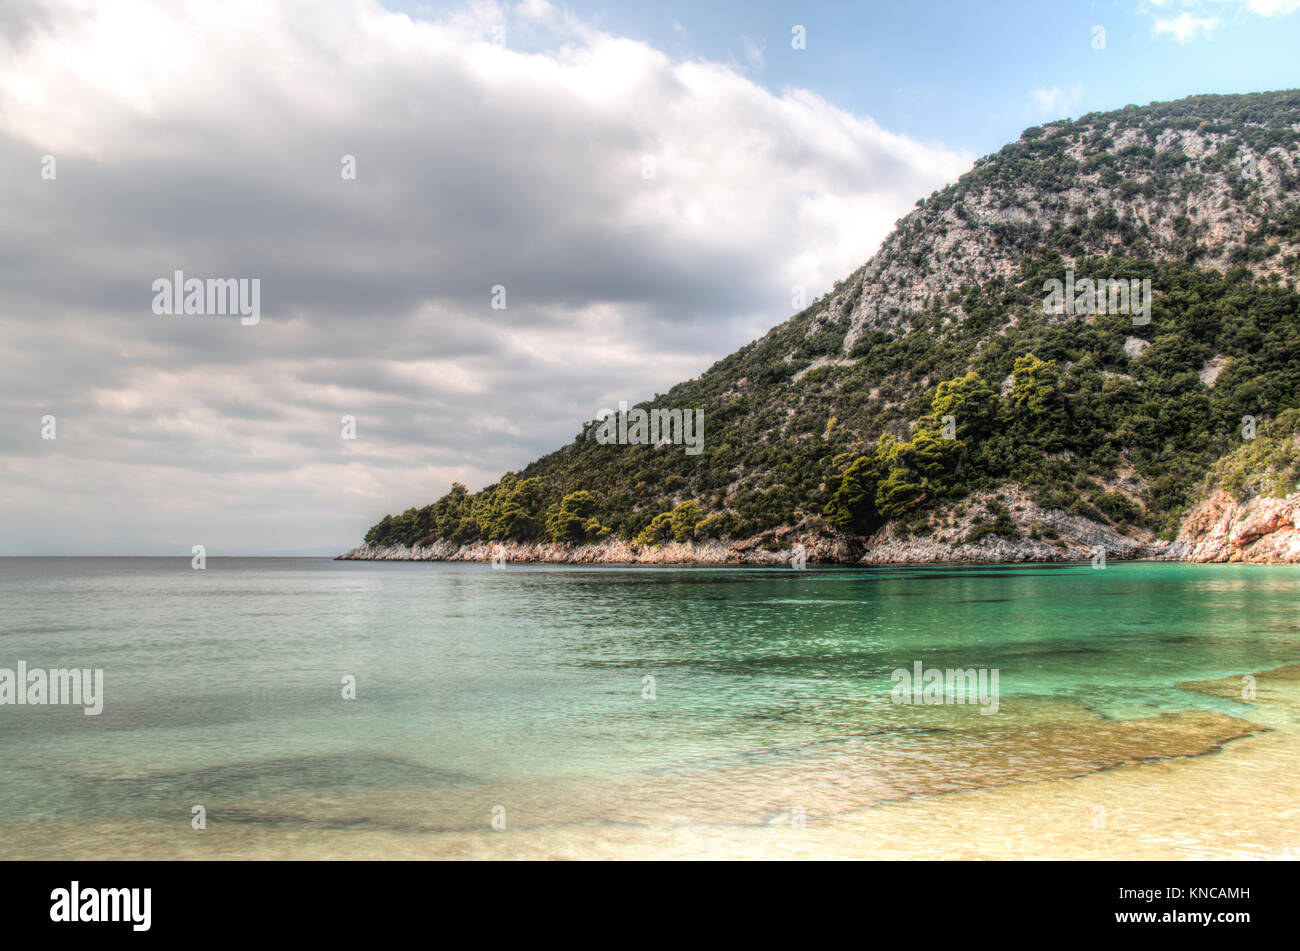 one of the many tropical beaches of skopelos island in greece stock